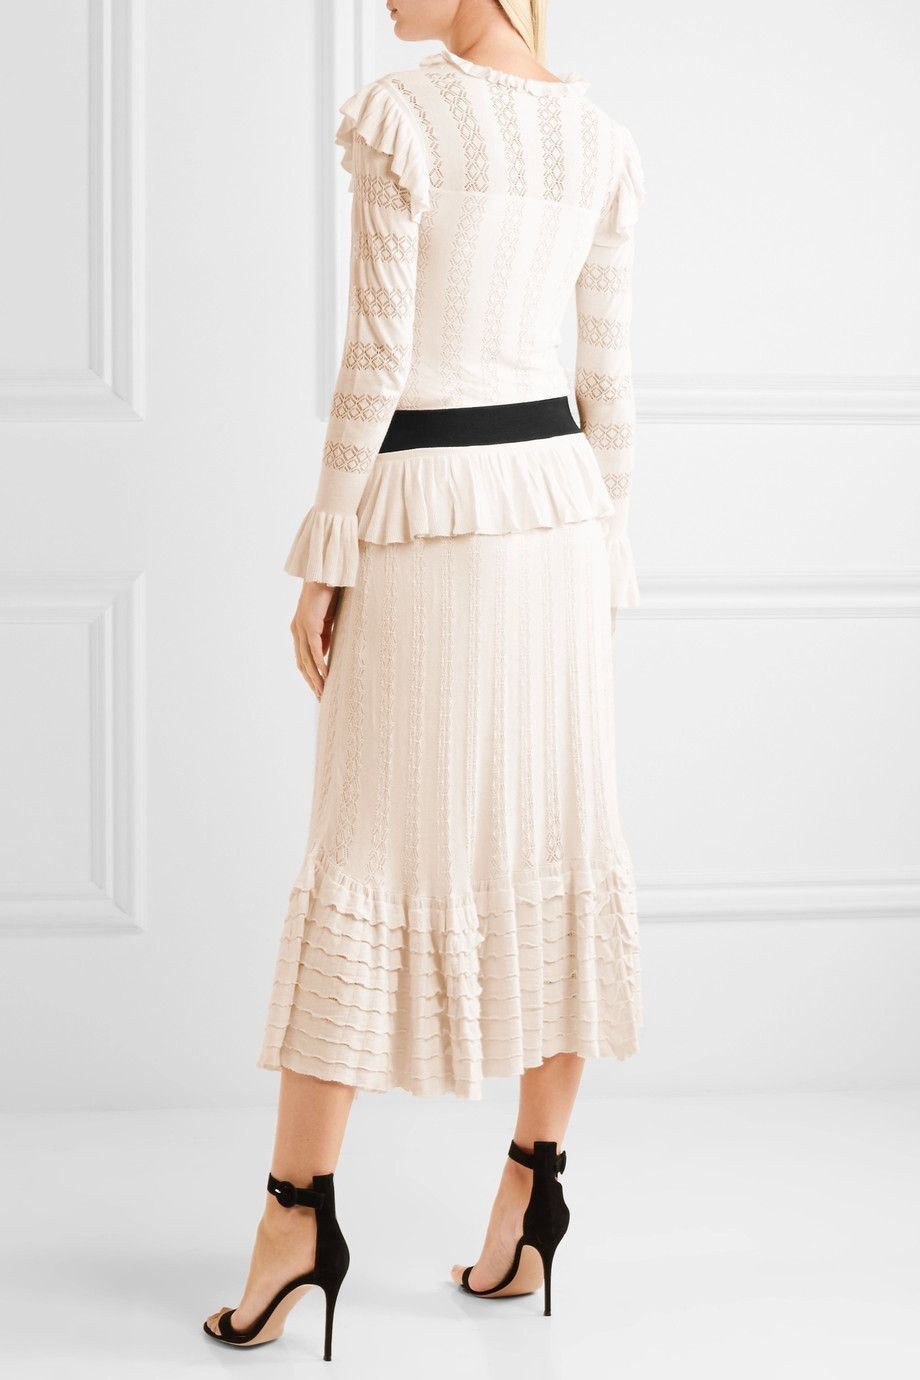 Cypre Ruffled Pointelle-knit Midi Dress - Cream Temperley London t4ZuOOPyy